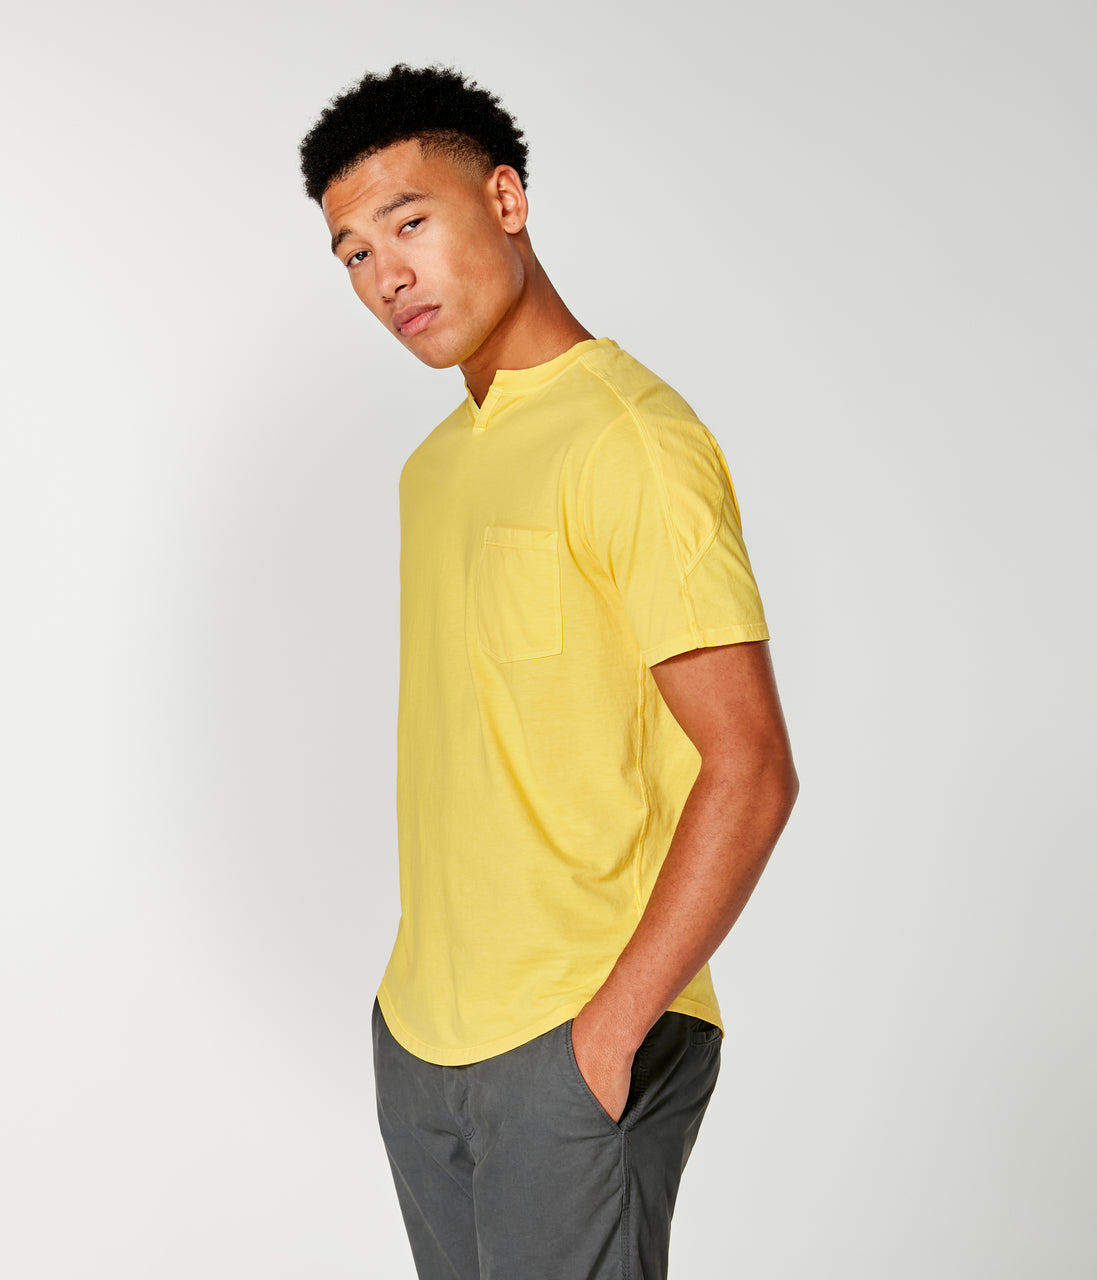 Premium Cotton Jersey Notch Neck Crew - Sun - Good Man Brand - Premium Cotton Jersey Notch Neck Crew - Sun